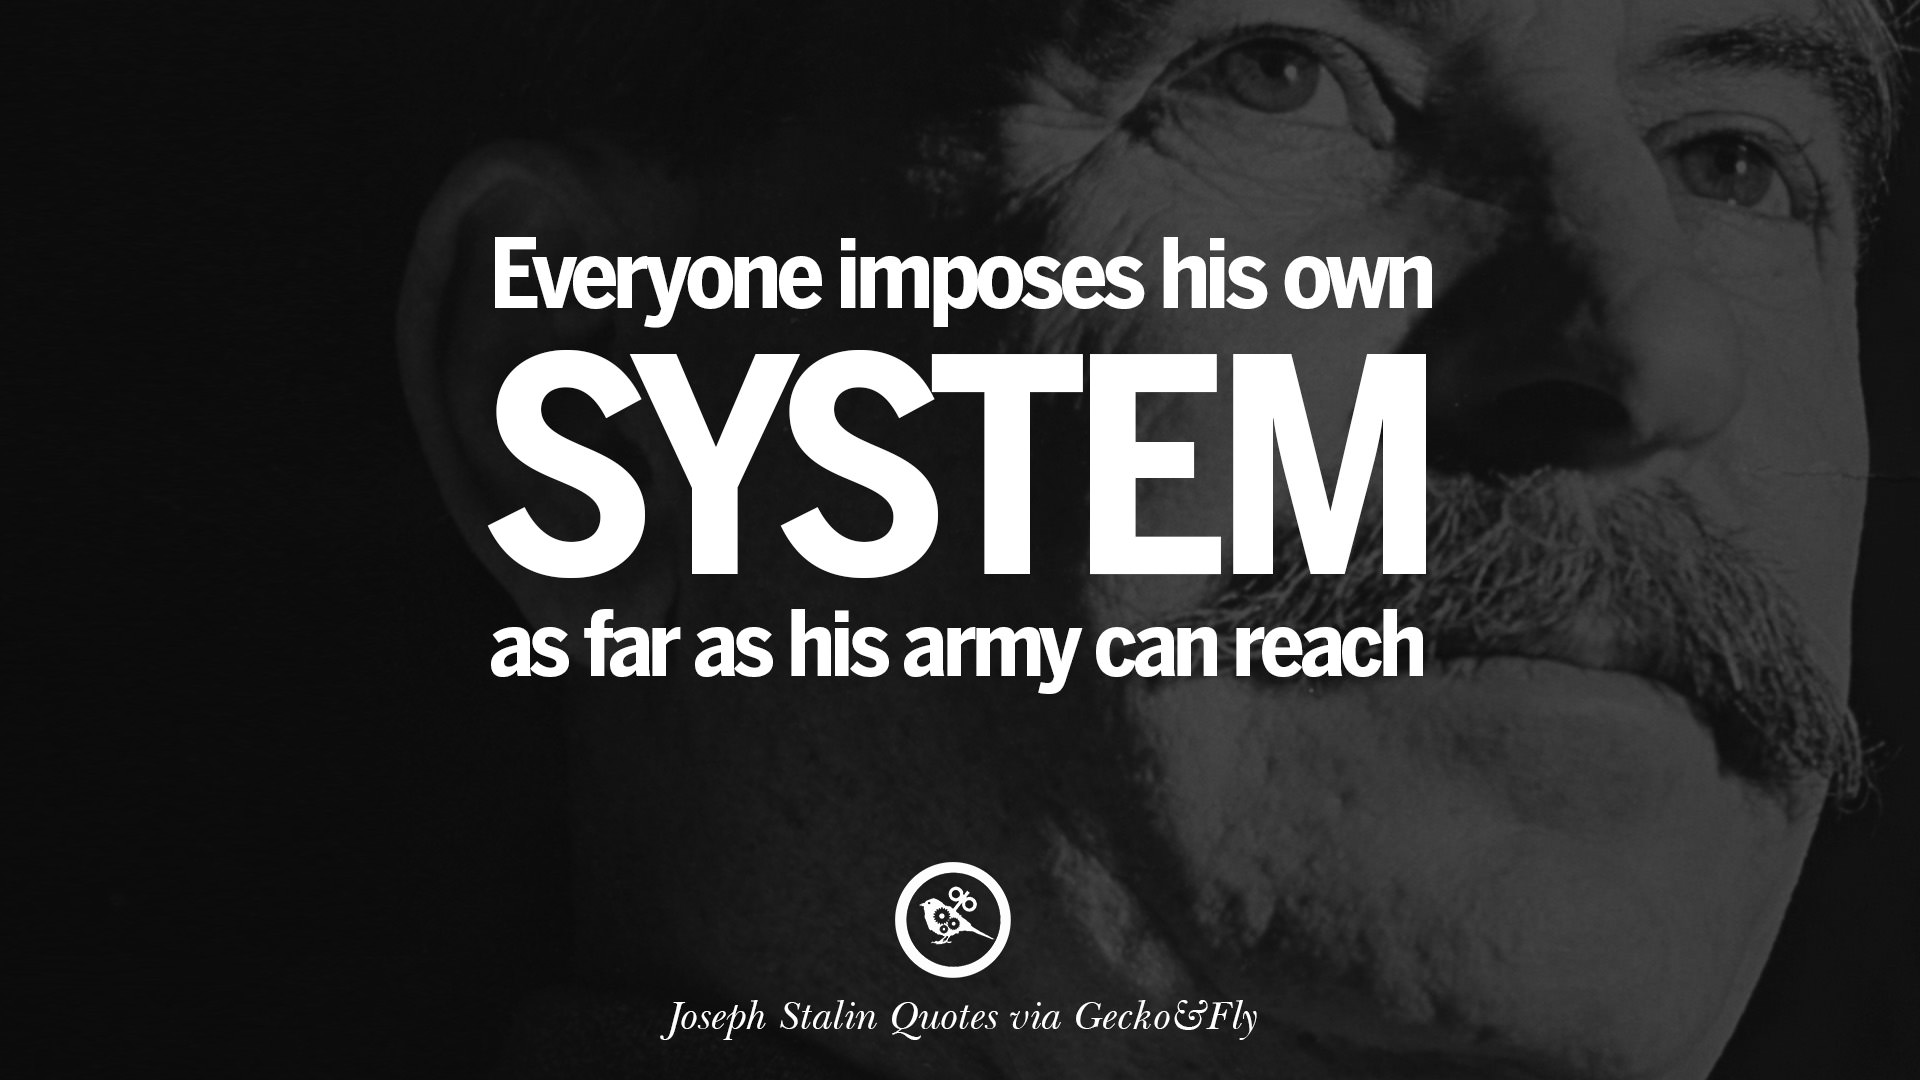 Gun Control Quotes 14 Joseph Stalin Quotes On Communism Freedom Power Ideas And